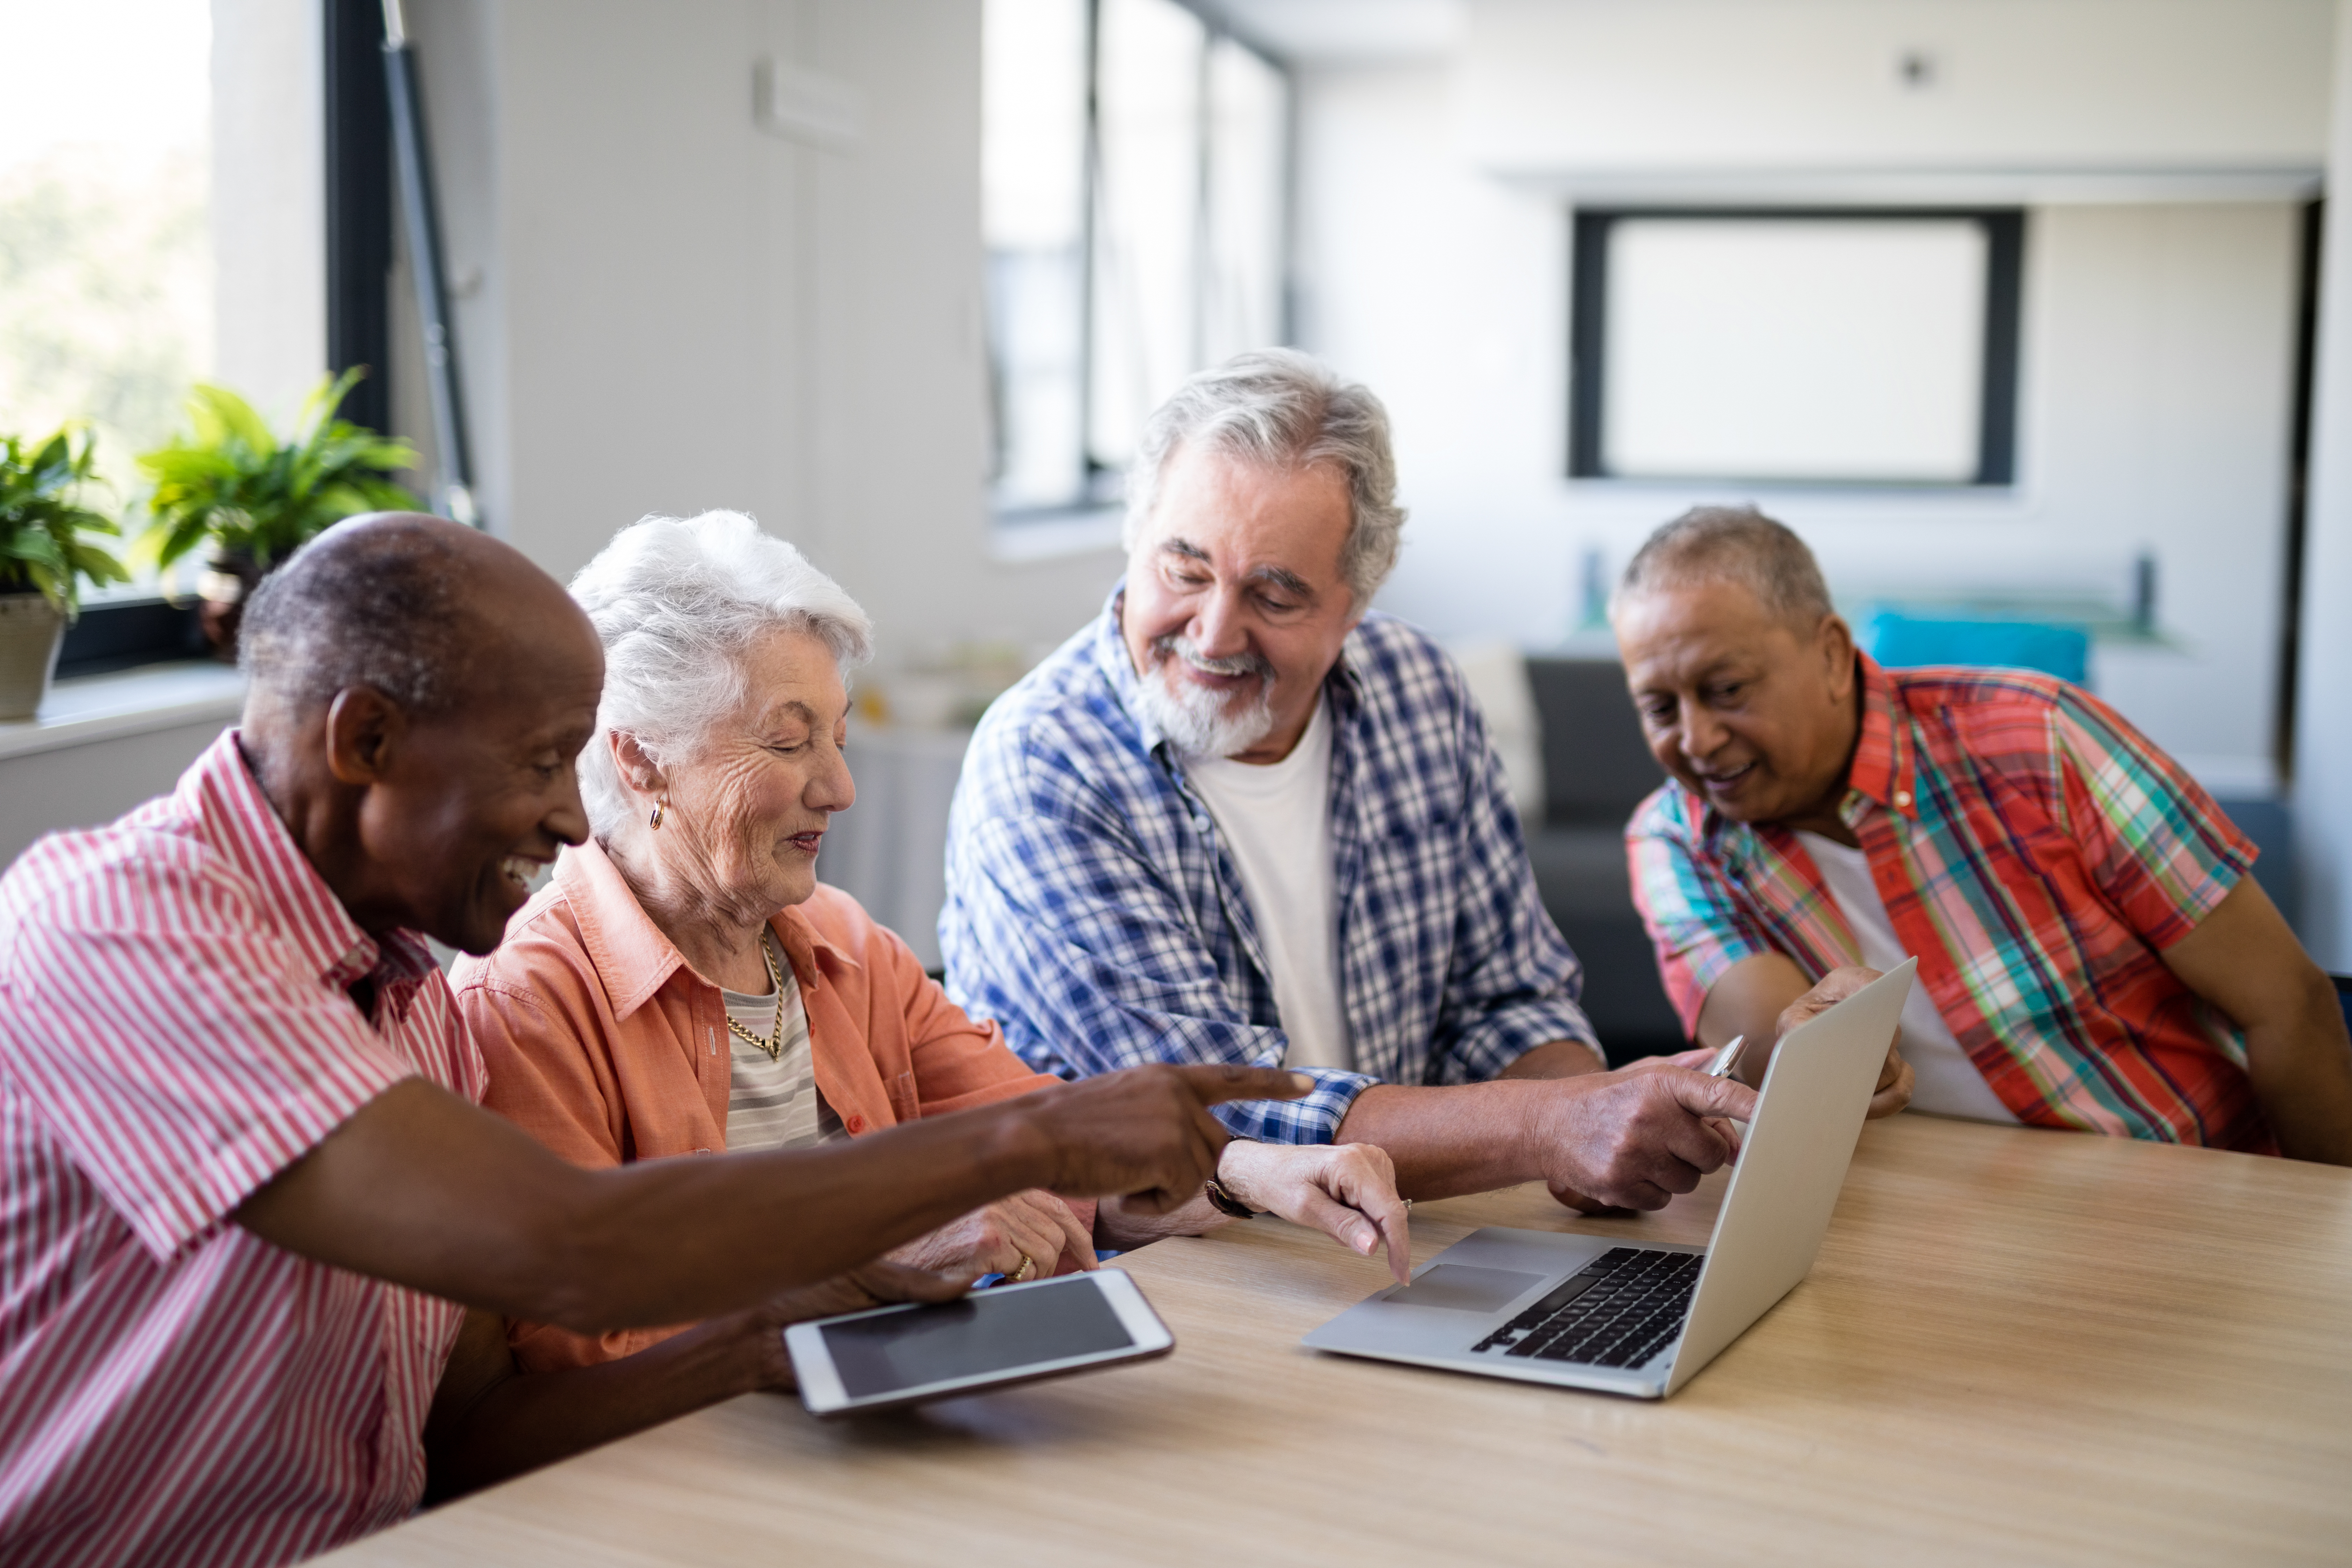 5 Signs That It's Time For An Assisted Living Community